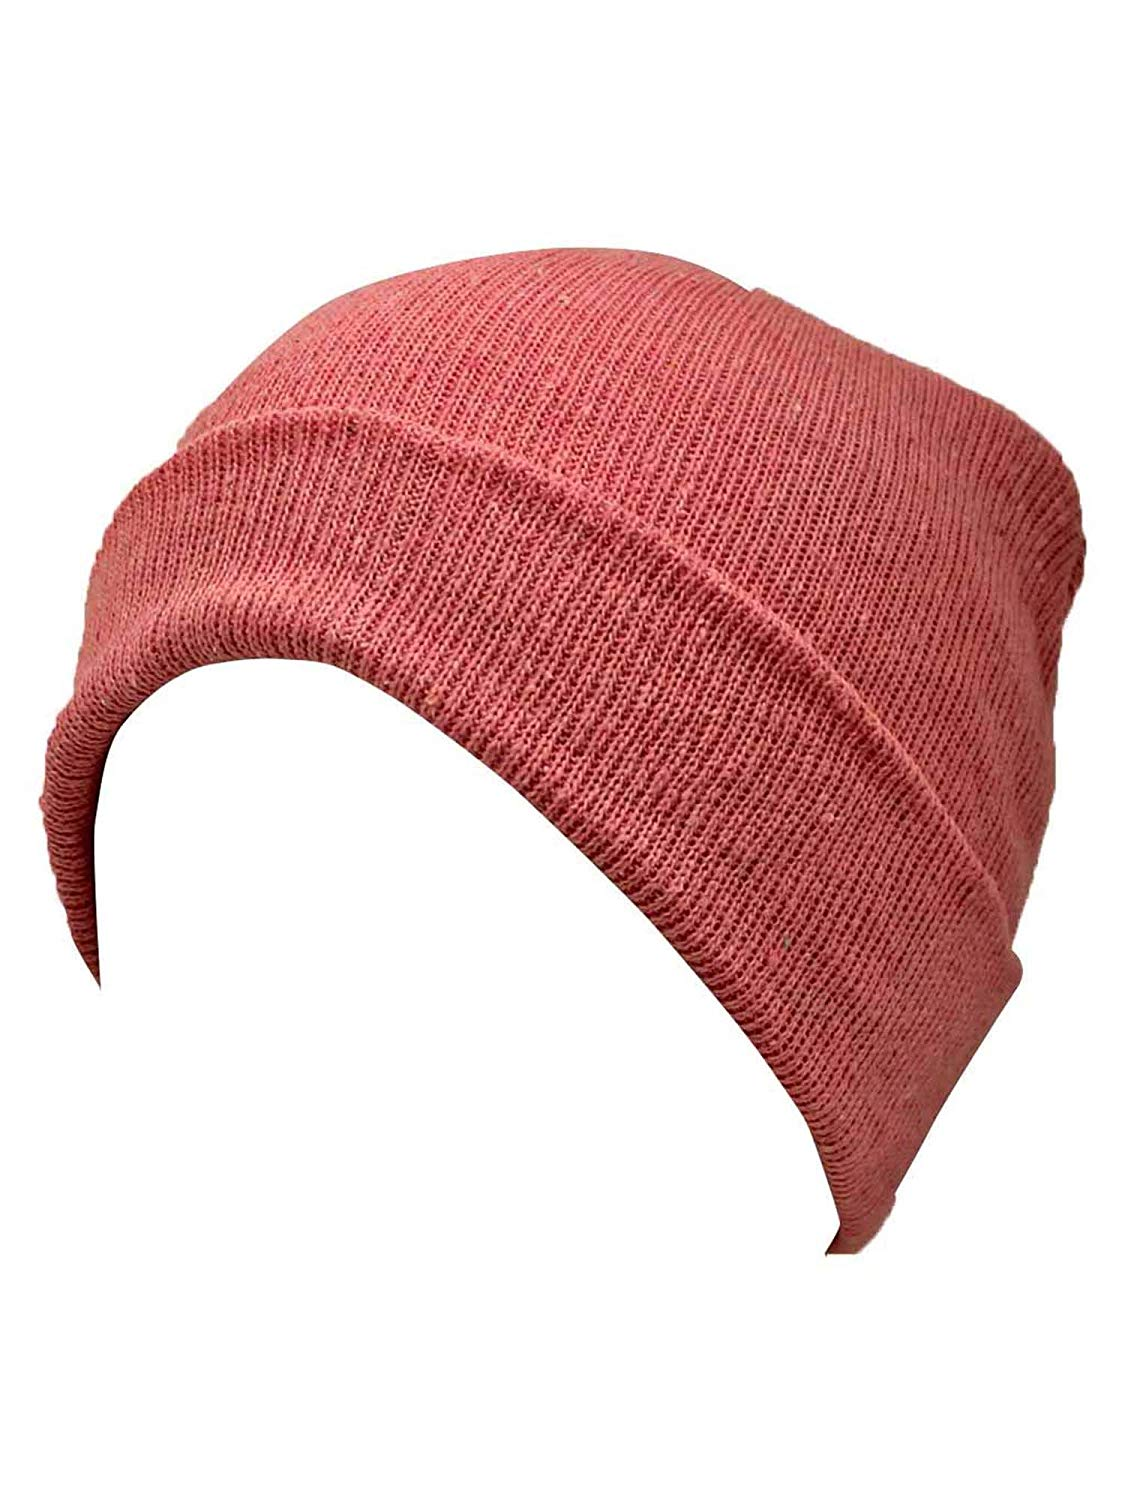 897f88e81 Cheap Tight Fit Beanie, find Tight Fit Beanie deals on line at ...